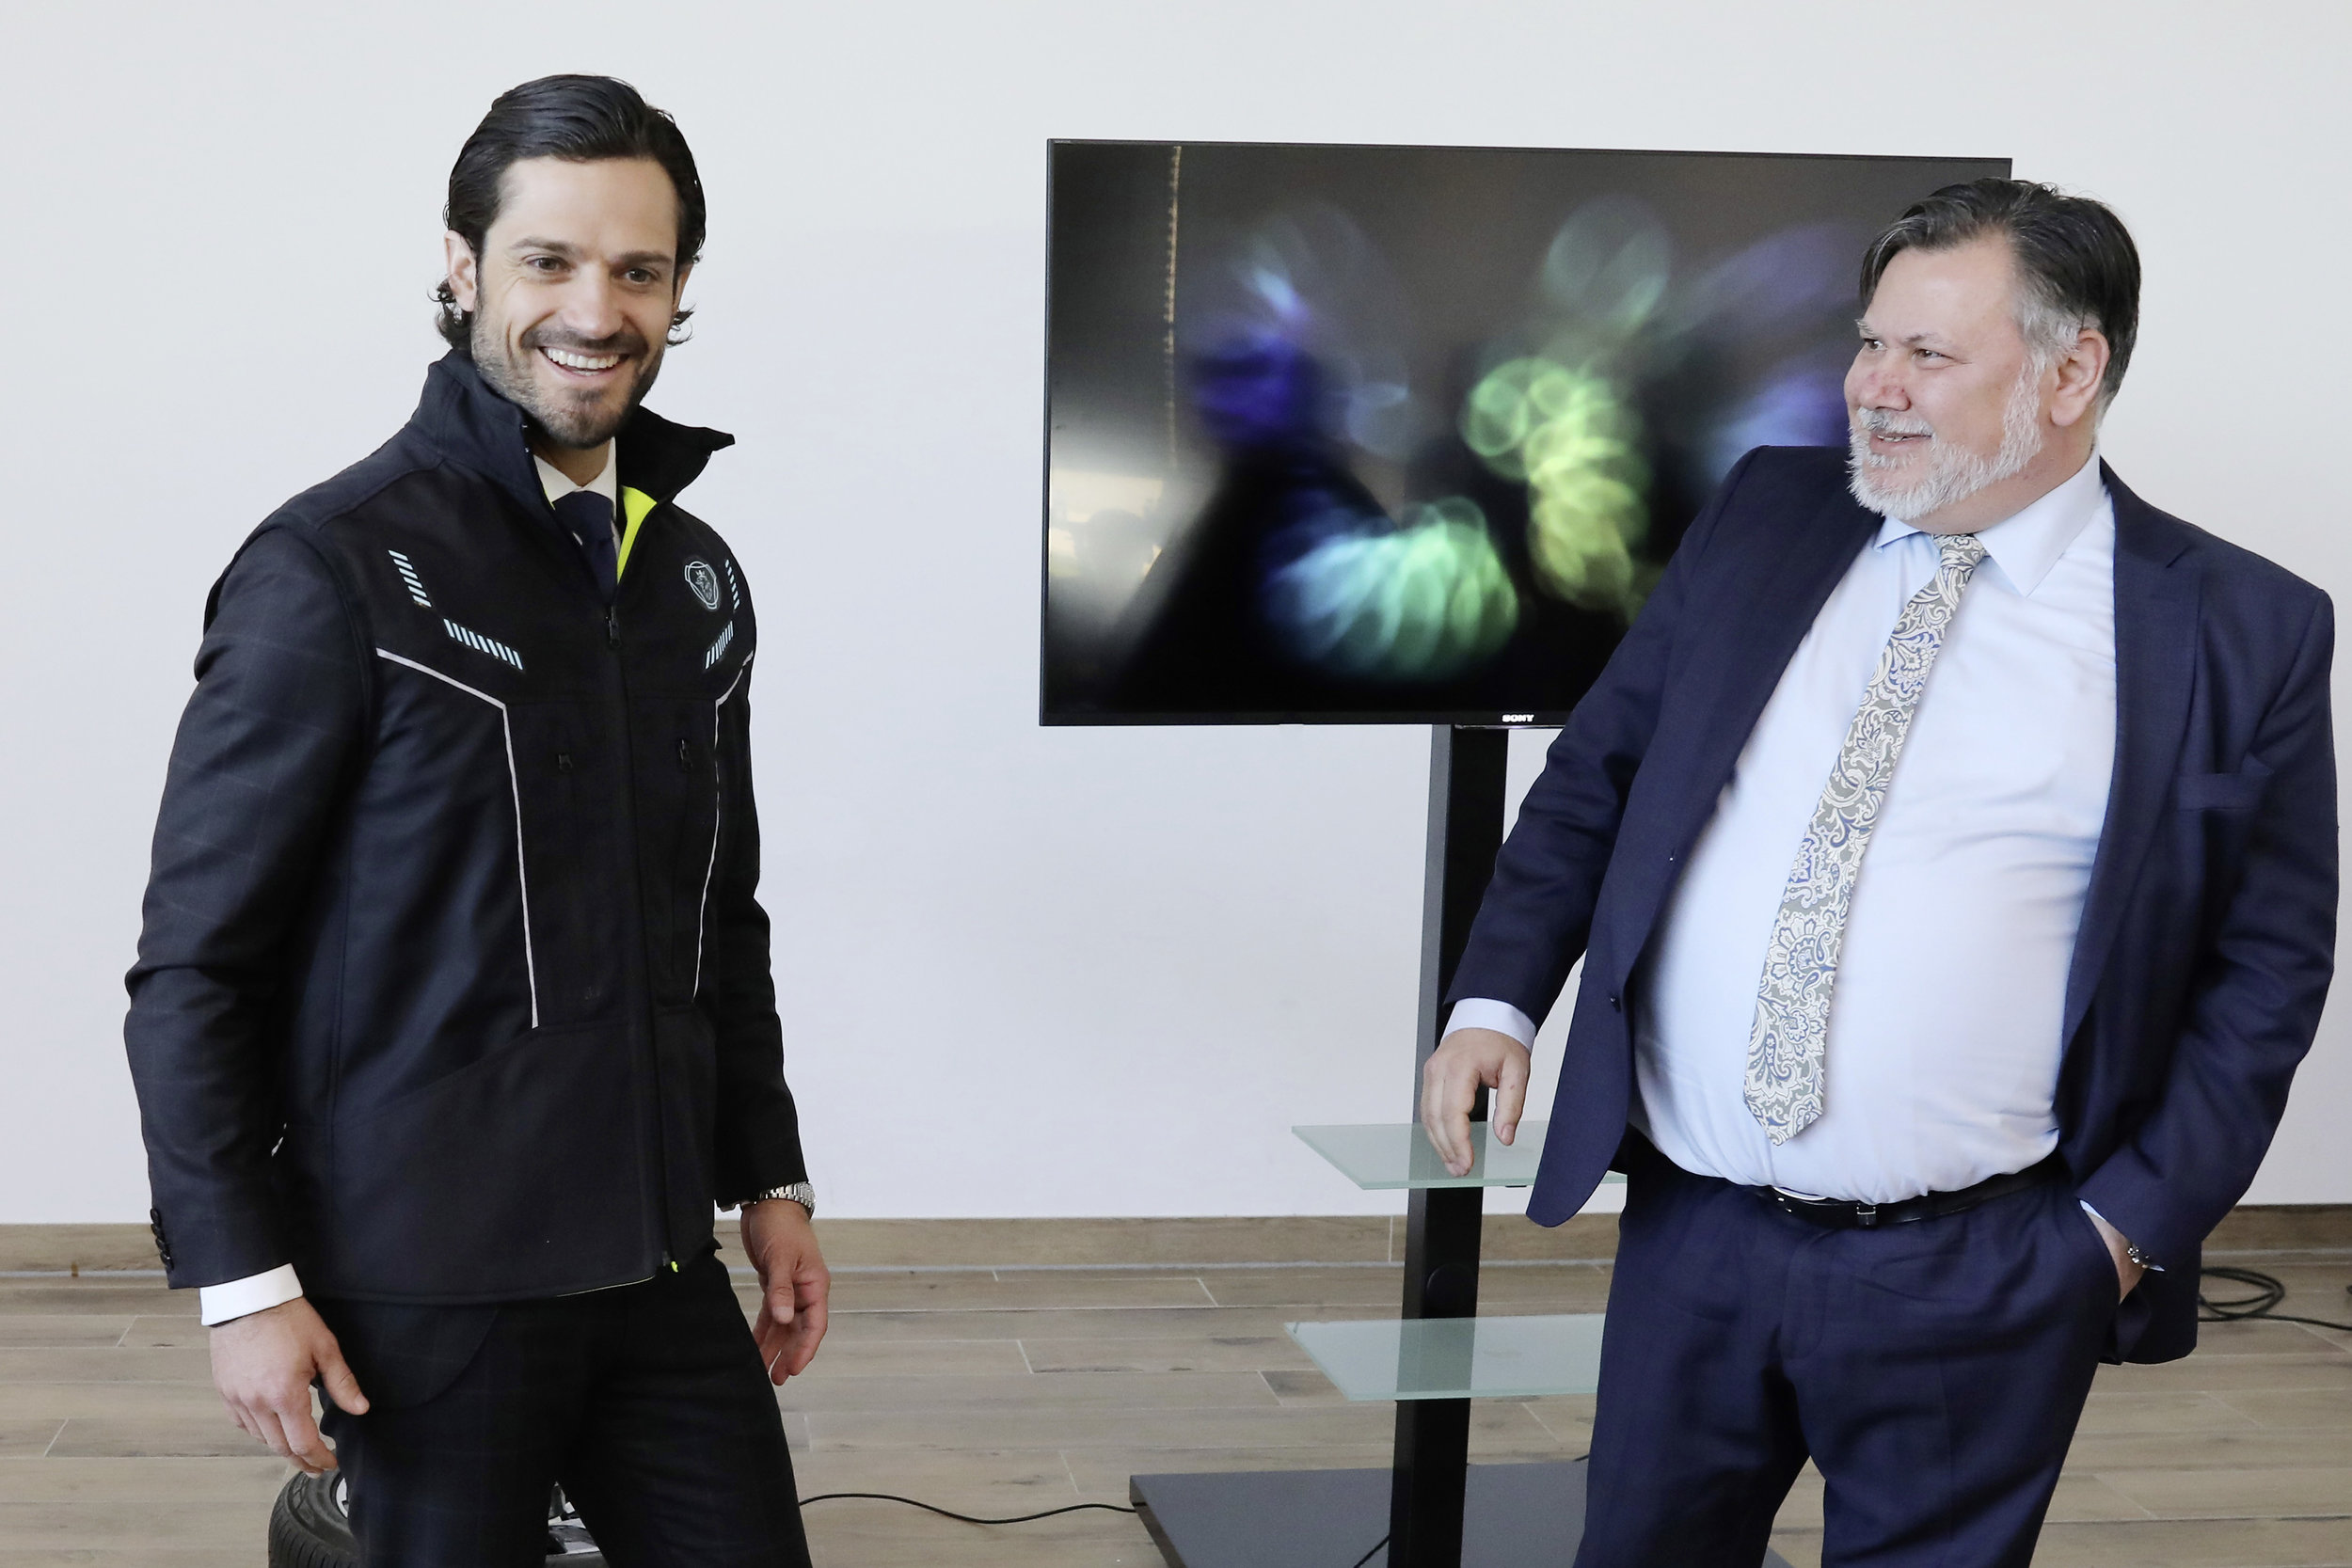 Prince Carl Philip of Sweden tried the new intelligent C-me Vest developed by Scania Group, in a collaboration with the startup Imagimob, during his visit to Volkswagen. Photo: VW Group